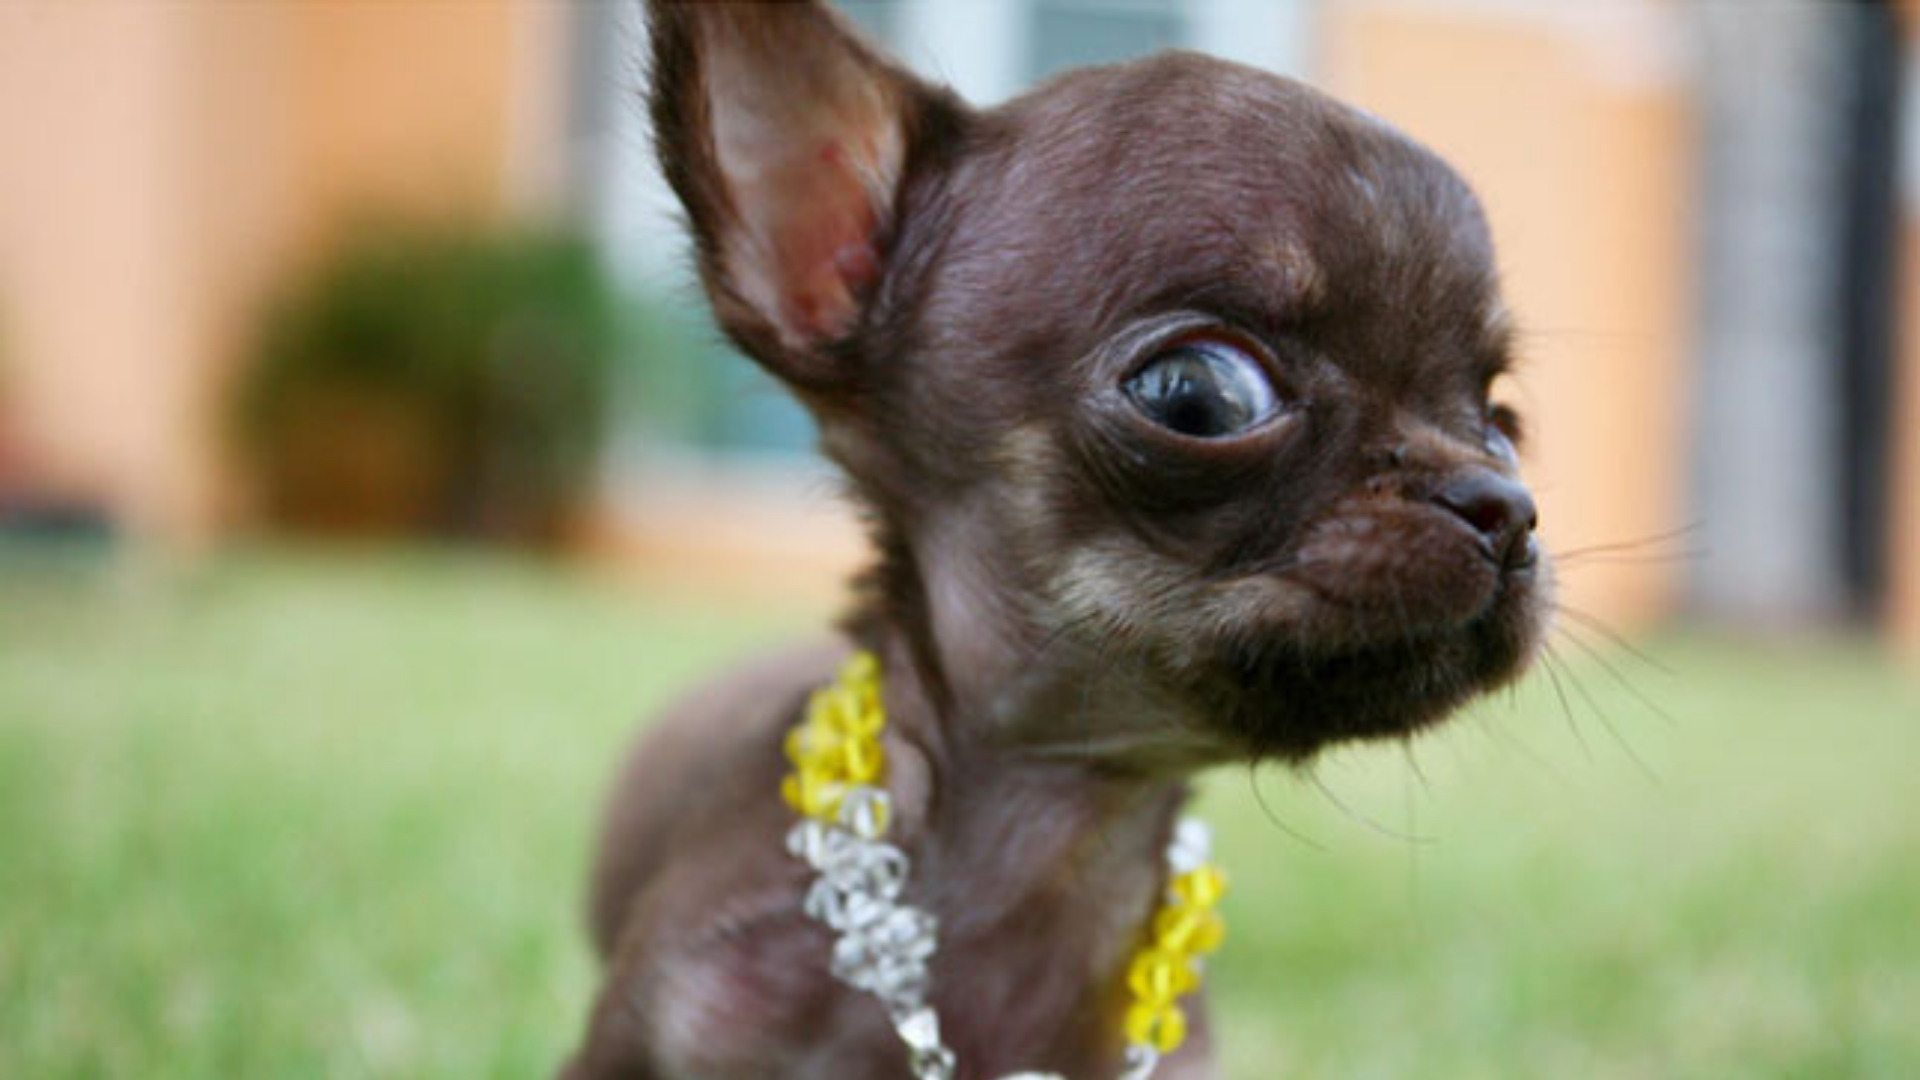 The smallest dog in the world